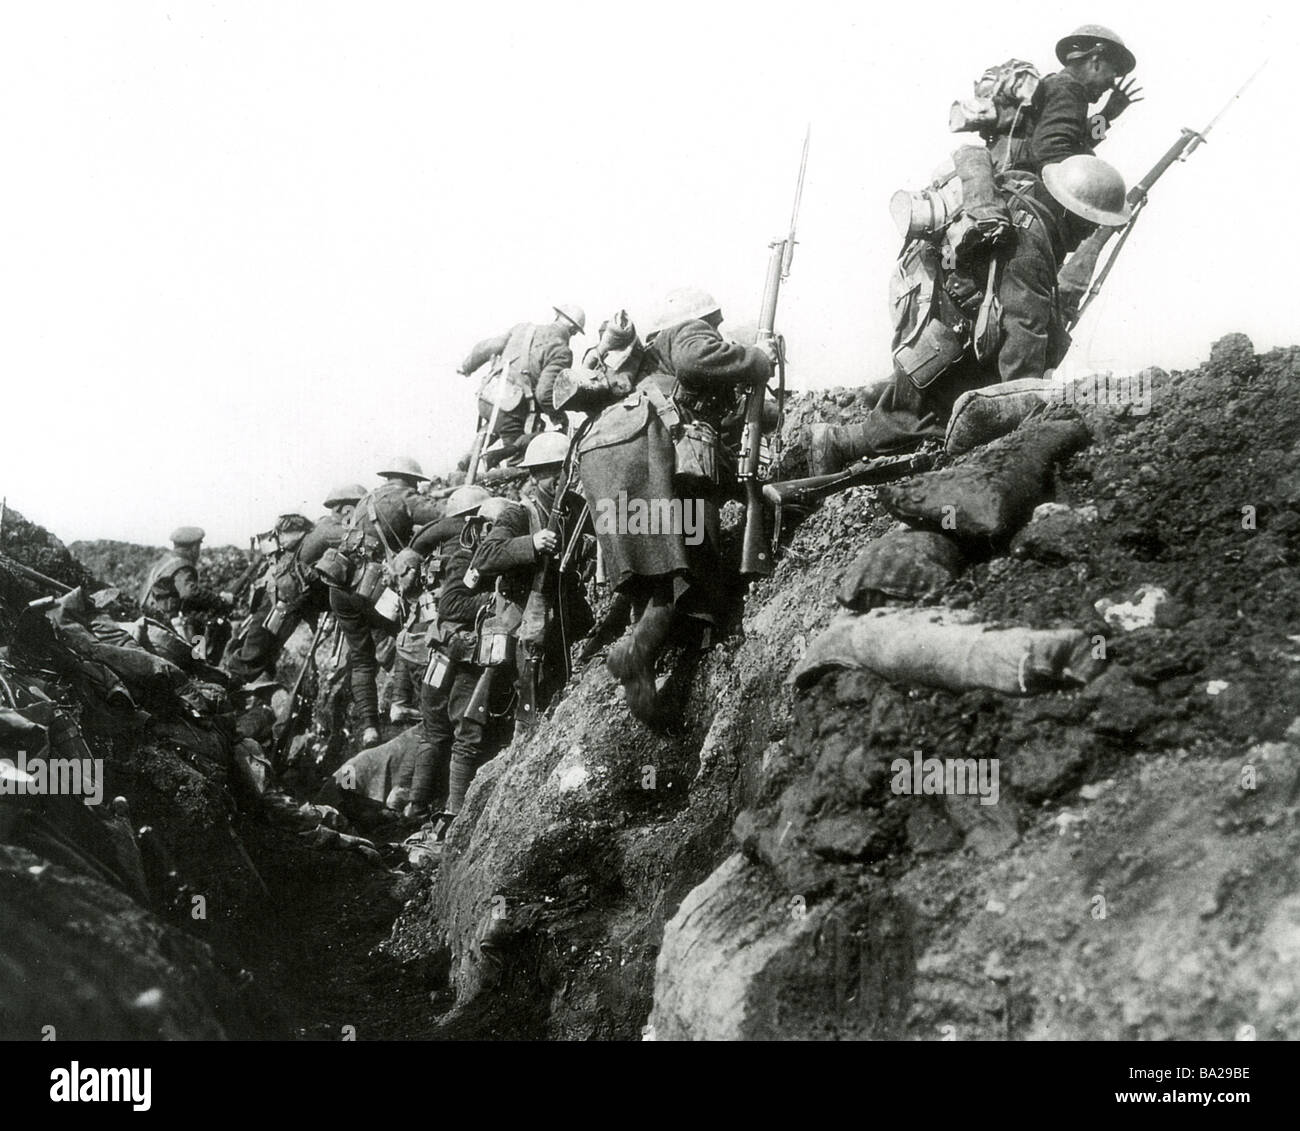 BRITISH TROOPS go on the attack from their trench in WWI - Stock Image